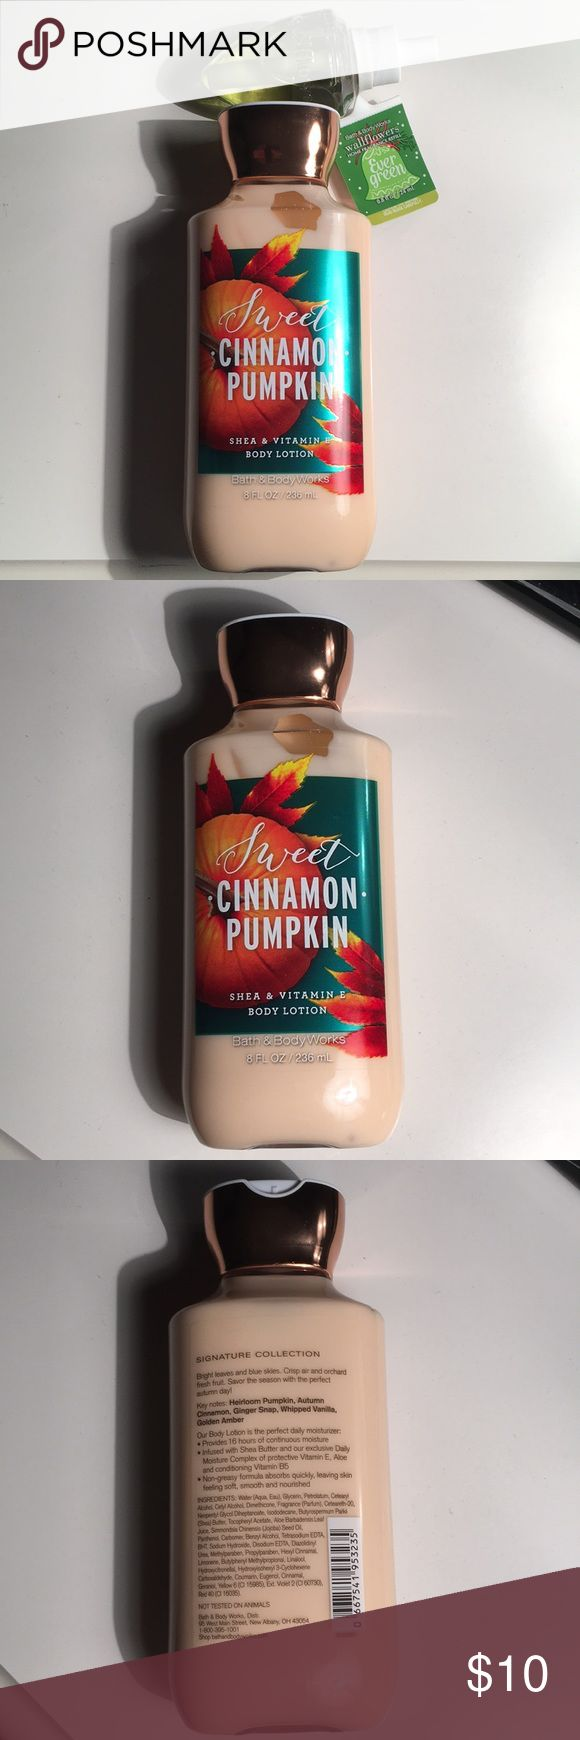 💥SALE !! Bath & Body Works Holiday Bundle🍁🎄 Brand new, unopened, still in wrapper.  Bath & Body Works Sweet Cinnamon Pumpkin 8oz lotion & Evergreen Wallflower .8oz refill bulb. Lotion scent is heirloom pumpkin, autumn cinnamon, ginger snap, whipped vanilla & golden amber. 16 hour continuous moisture, perfect for a daily lotion, contains shea butter, vitamin E, aloe & vitamin B5. Non greasy, absorbs quickly & leaves skin soft & smooth. The wallflower scent is crisp white fir needles…